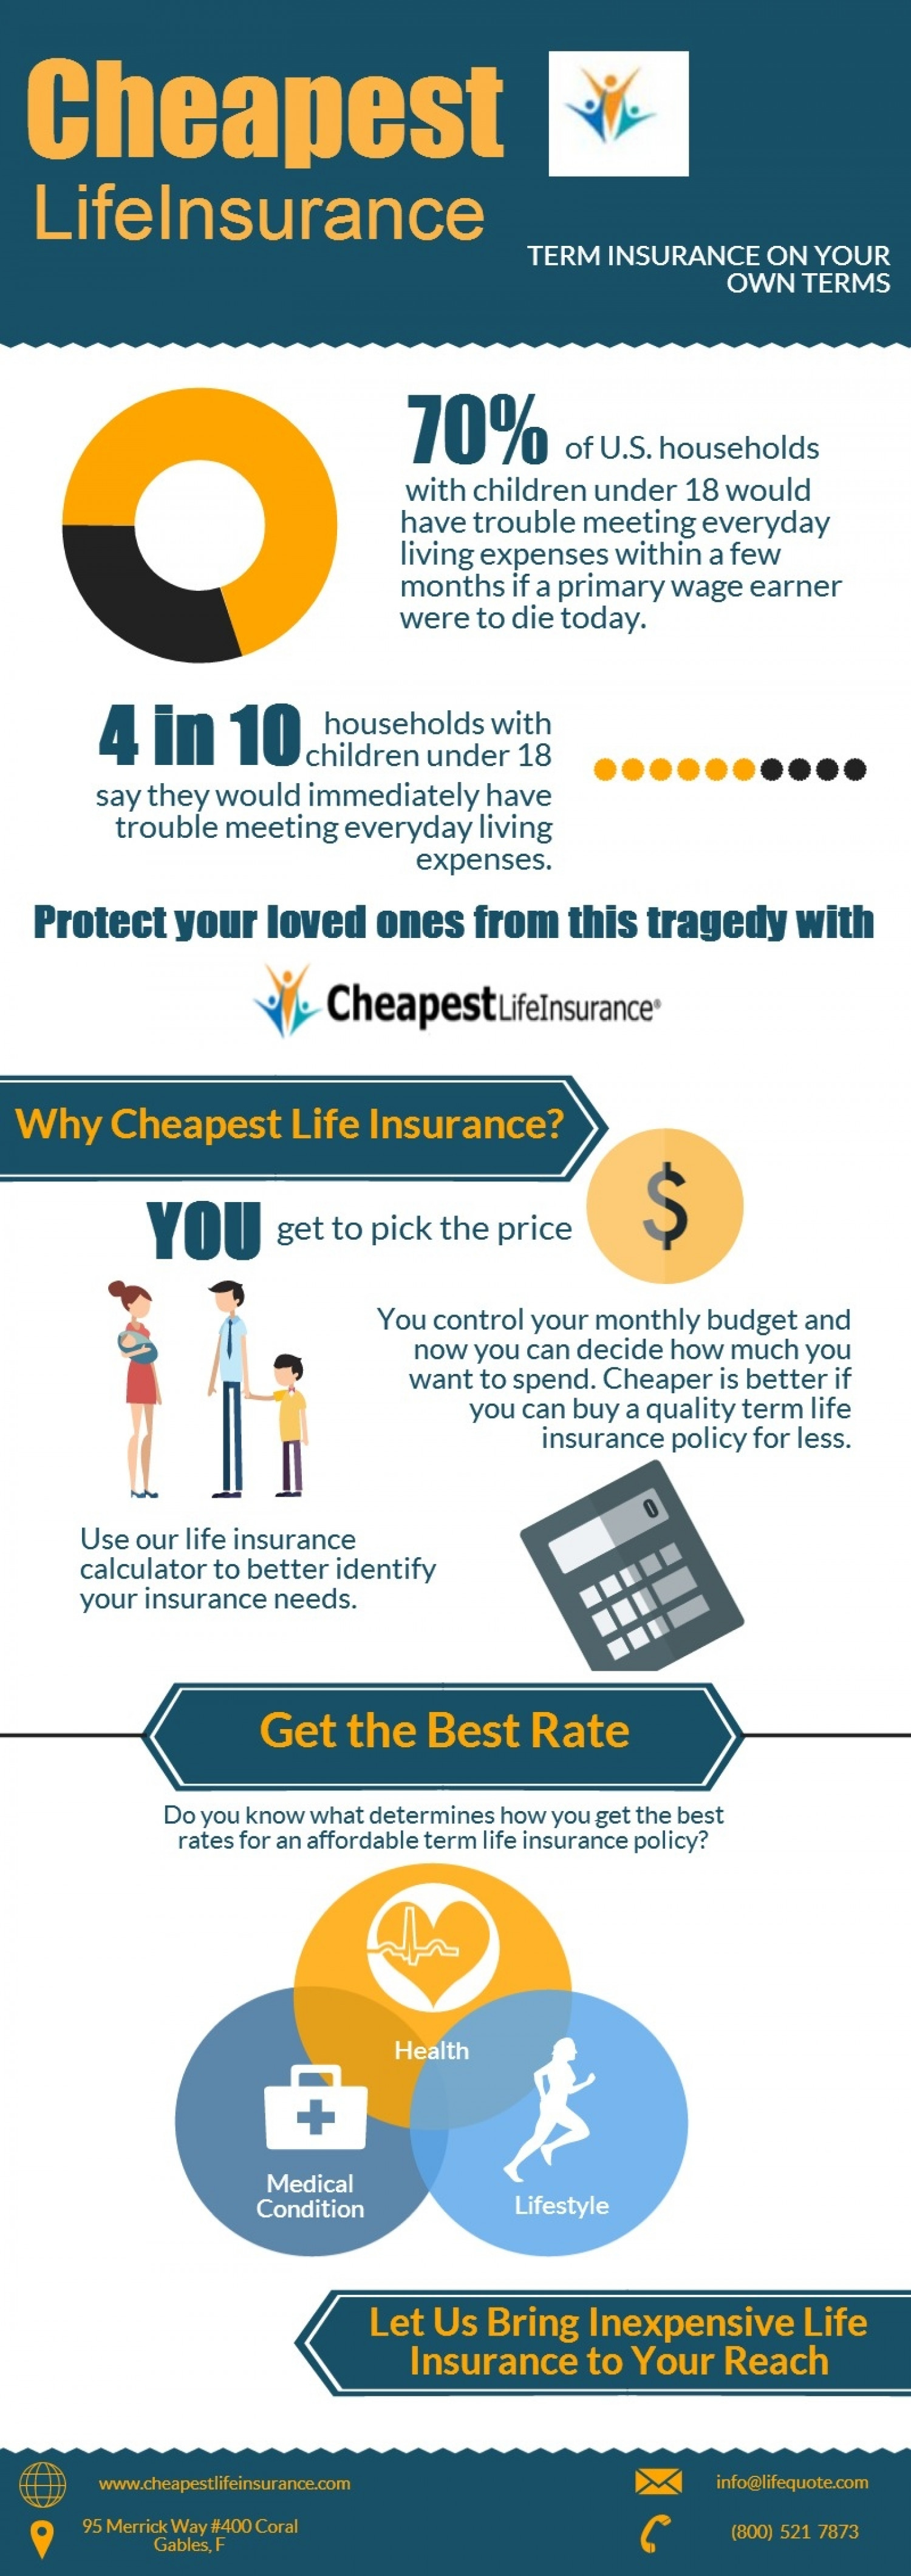 Cheapest Life Insurance Infographic